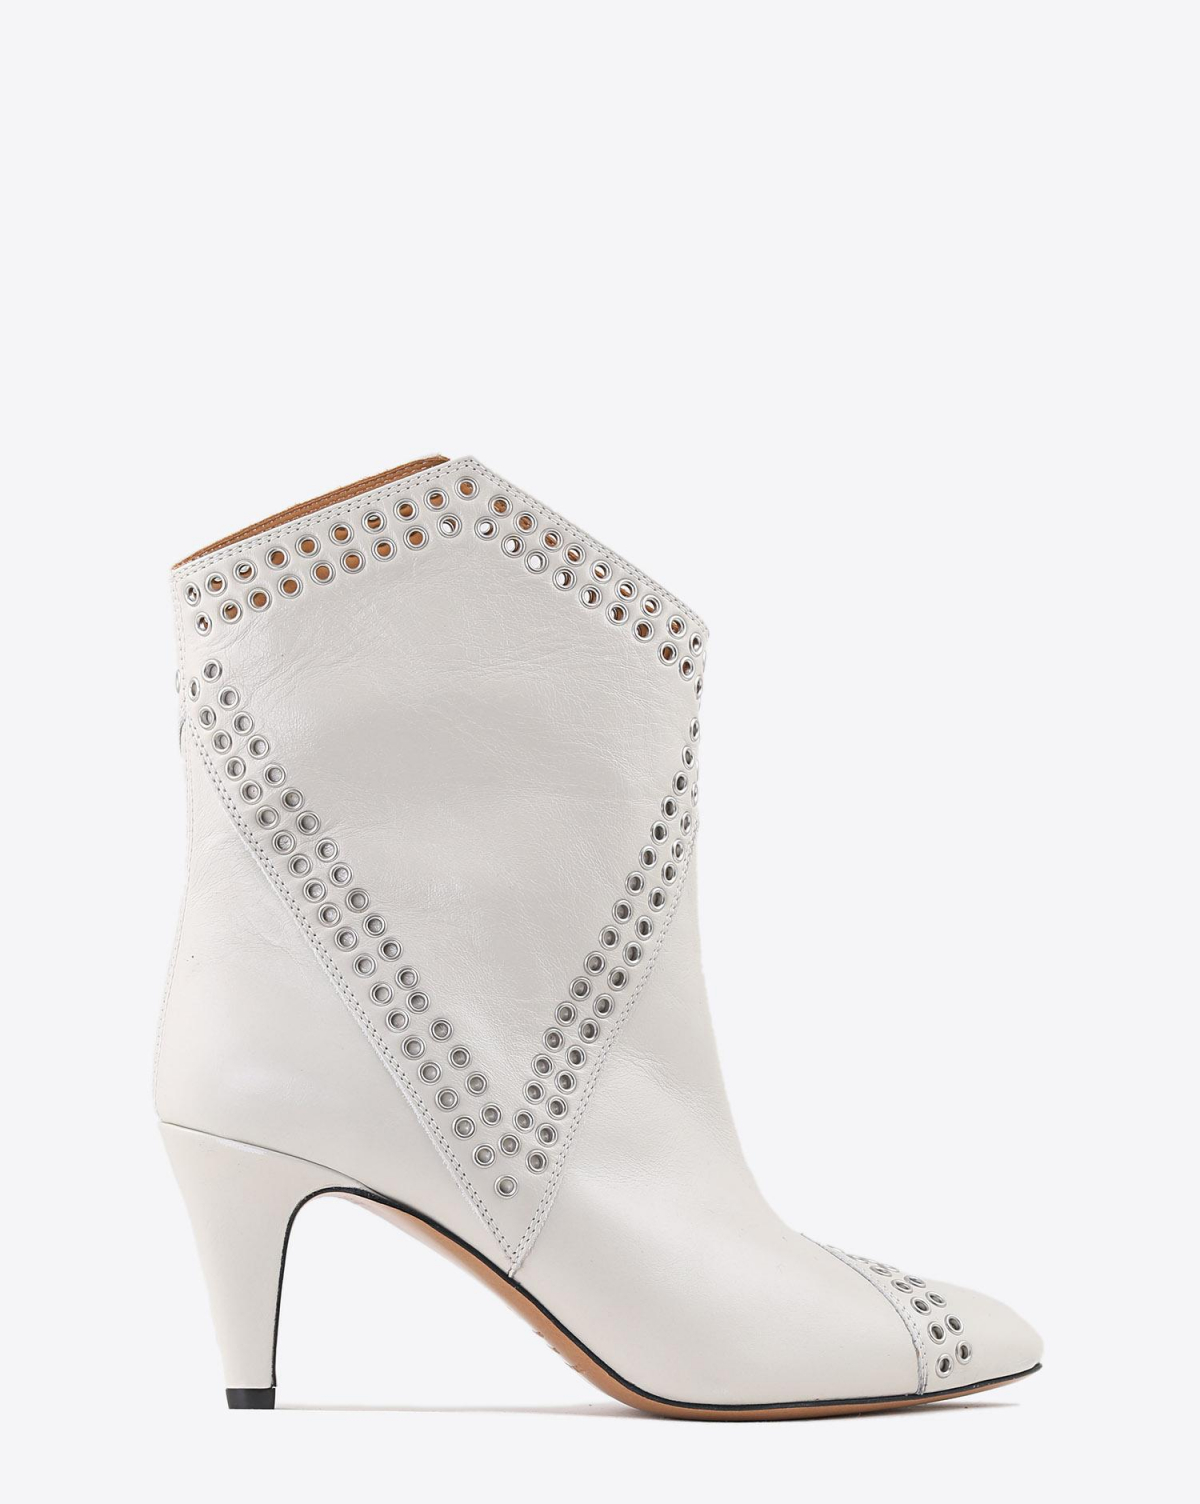 Isabel Marant Chaussures Boots DEMKA - White